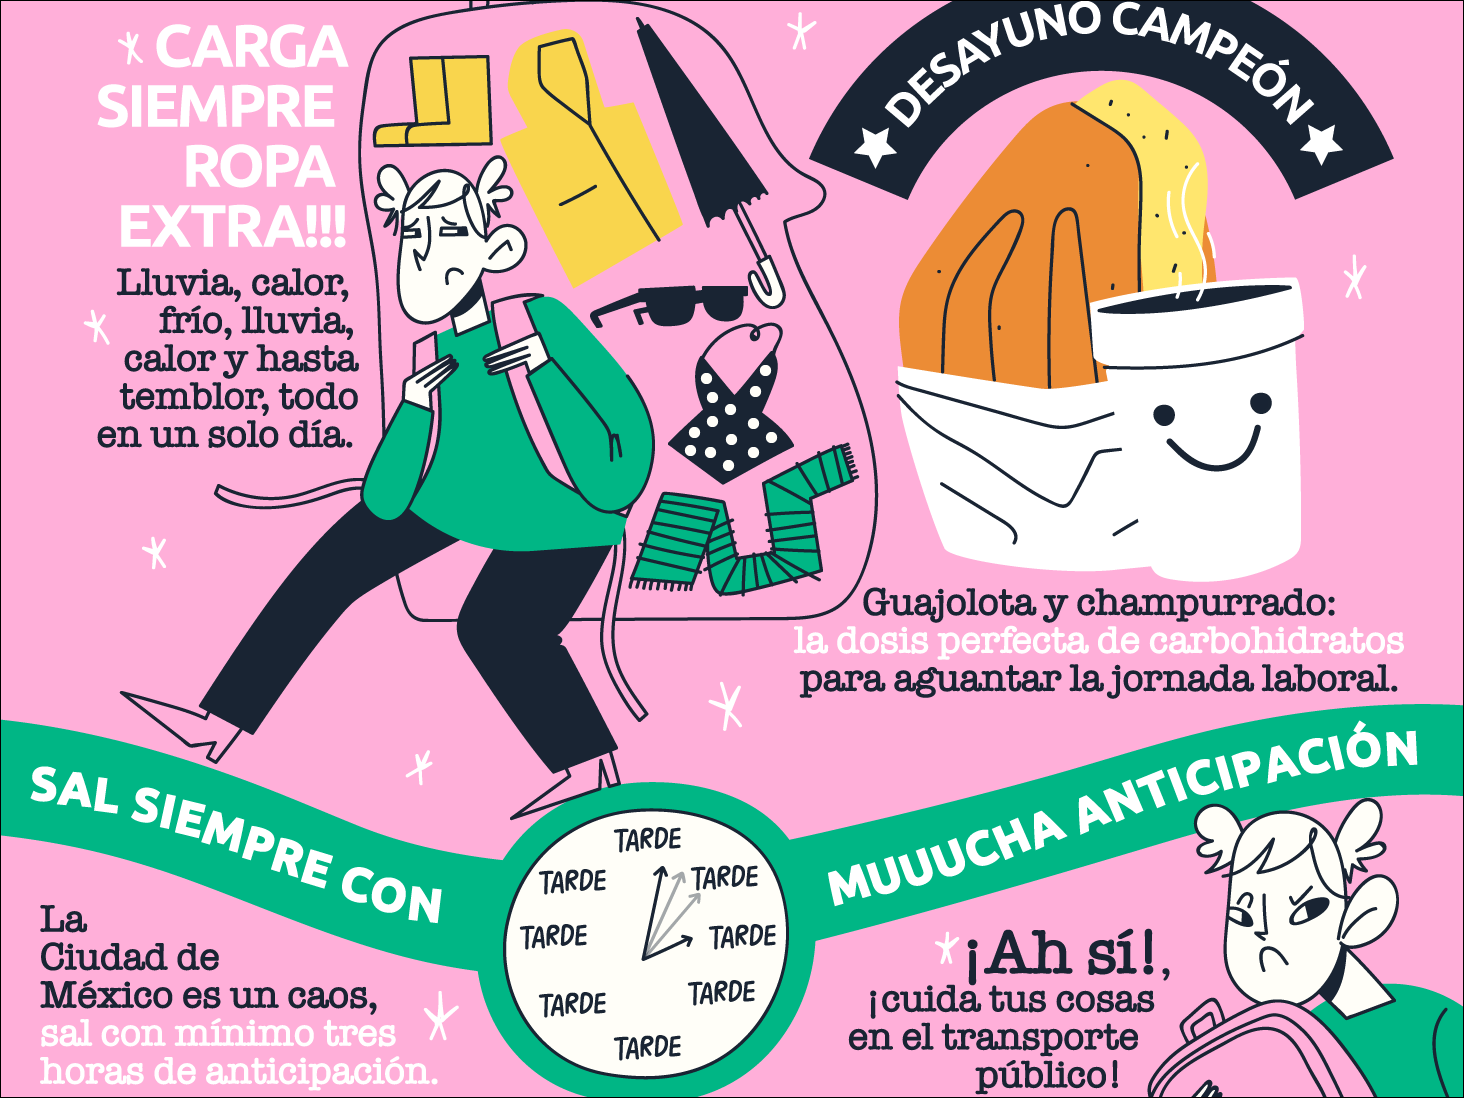 Survival Guide (Mexico City) mexico city pink info graph roomie design girl roomies illustration